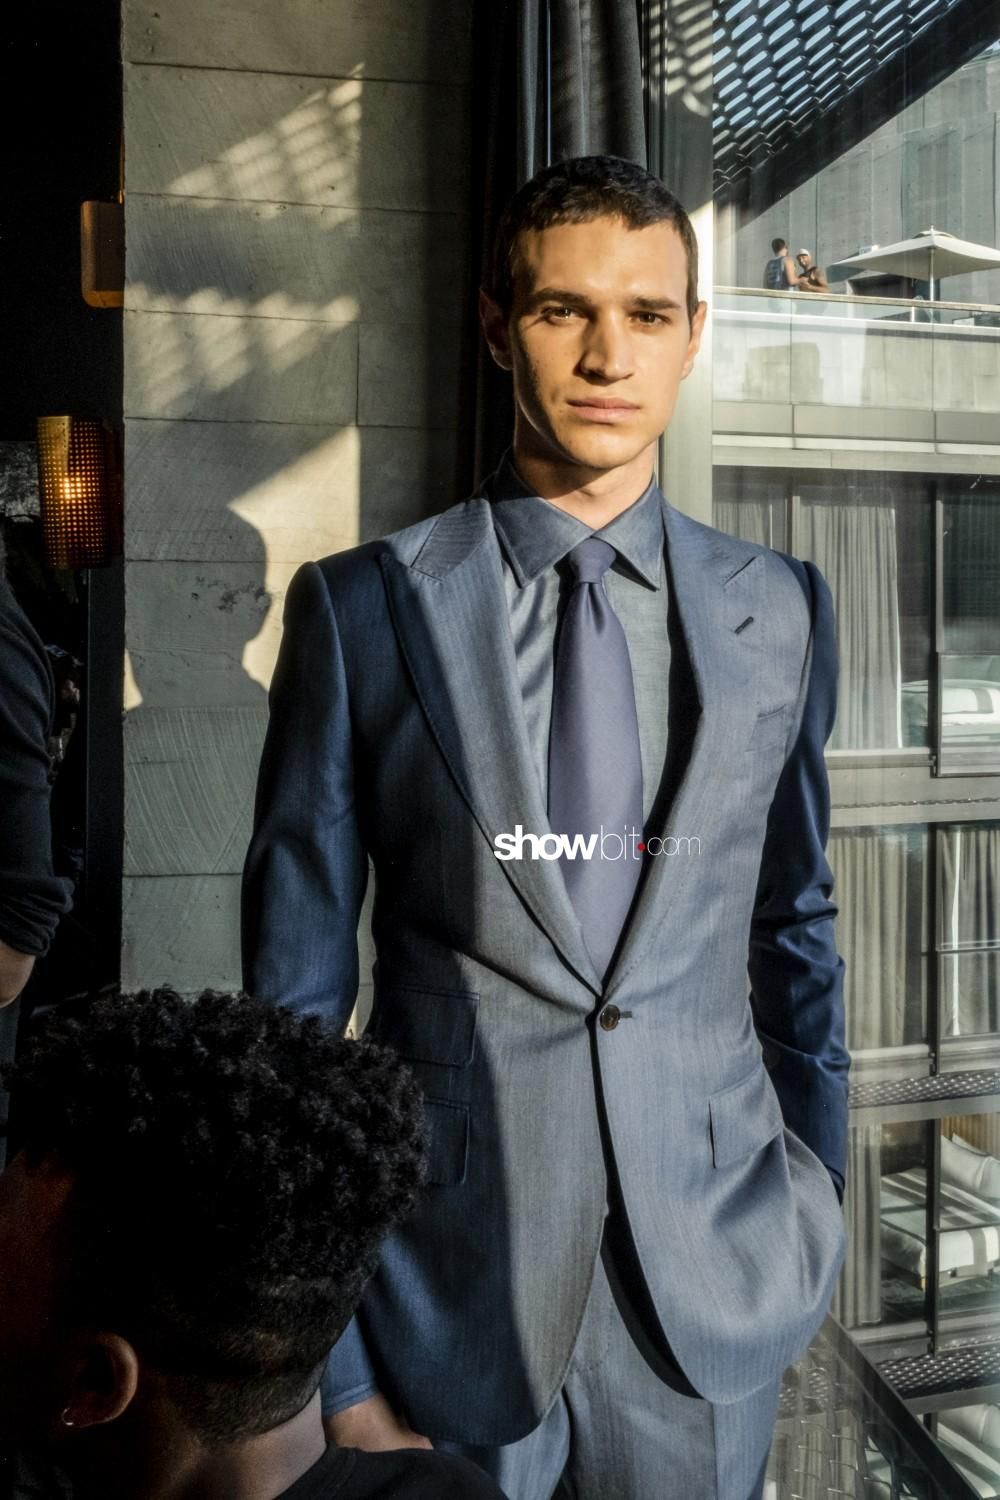 Frère backstage Man Spring Summer 2020 New York